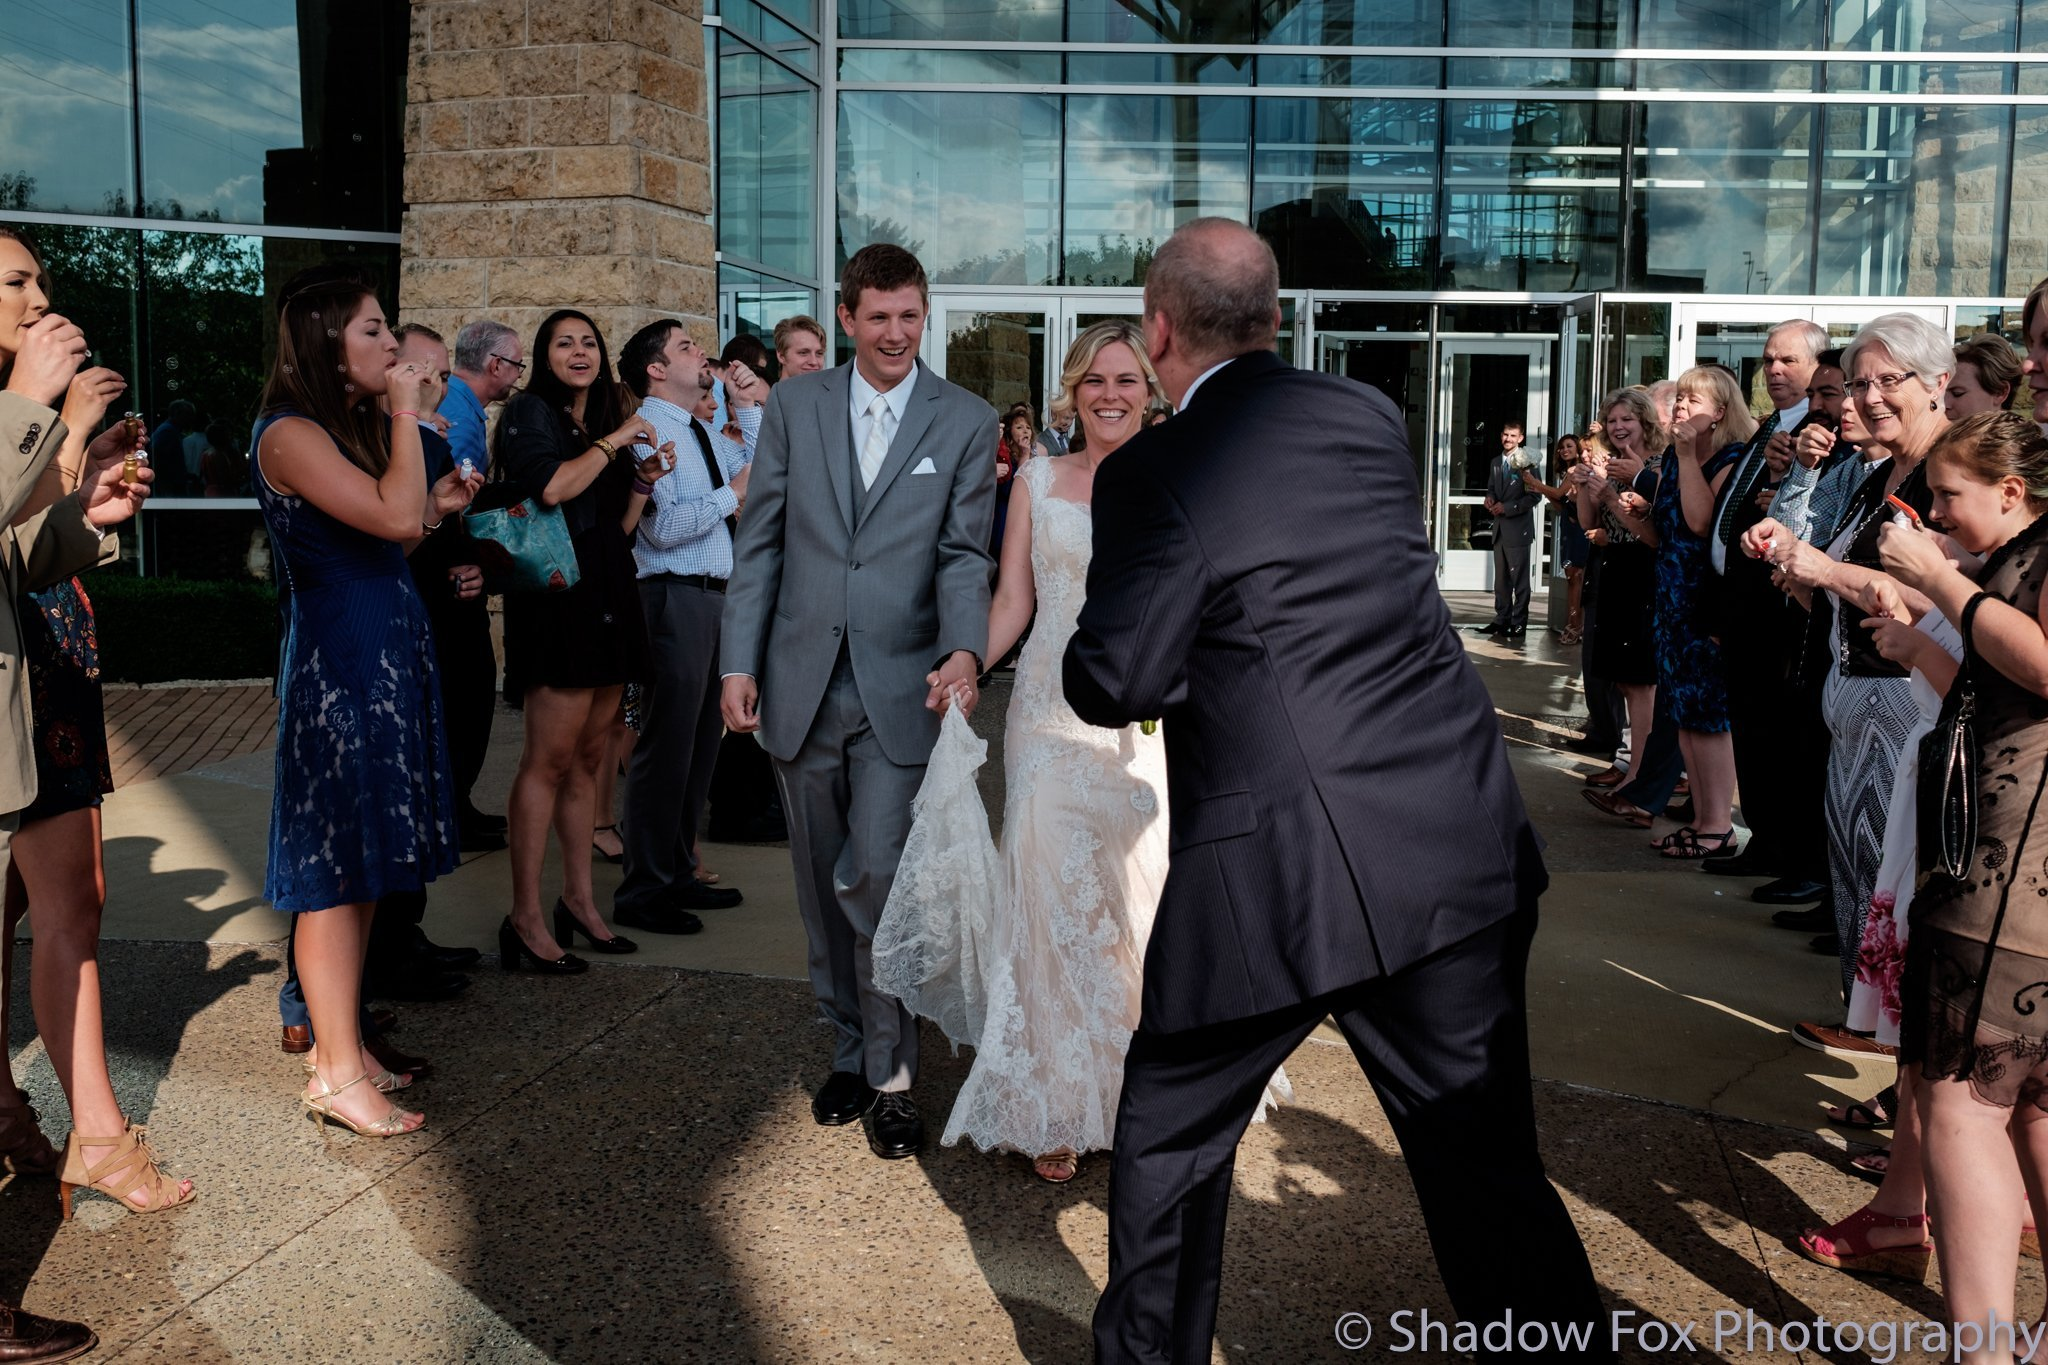 Family congratulating couple after wedding